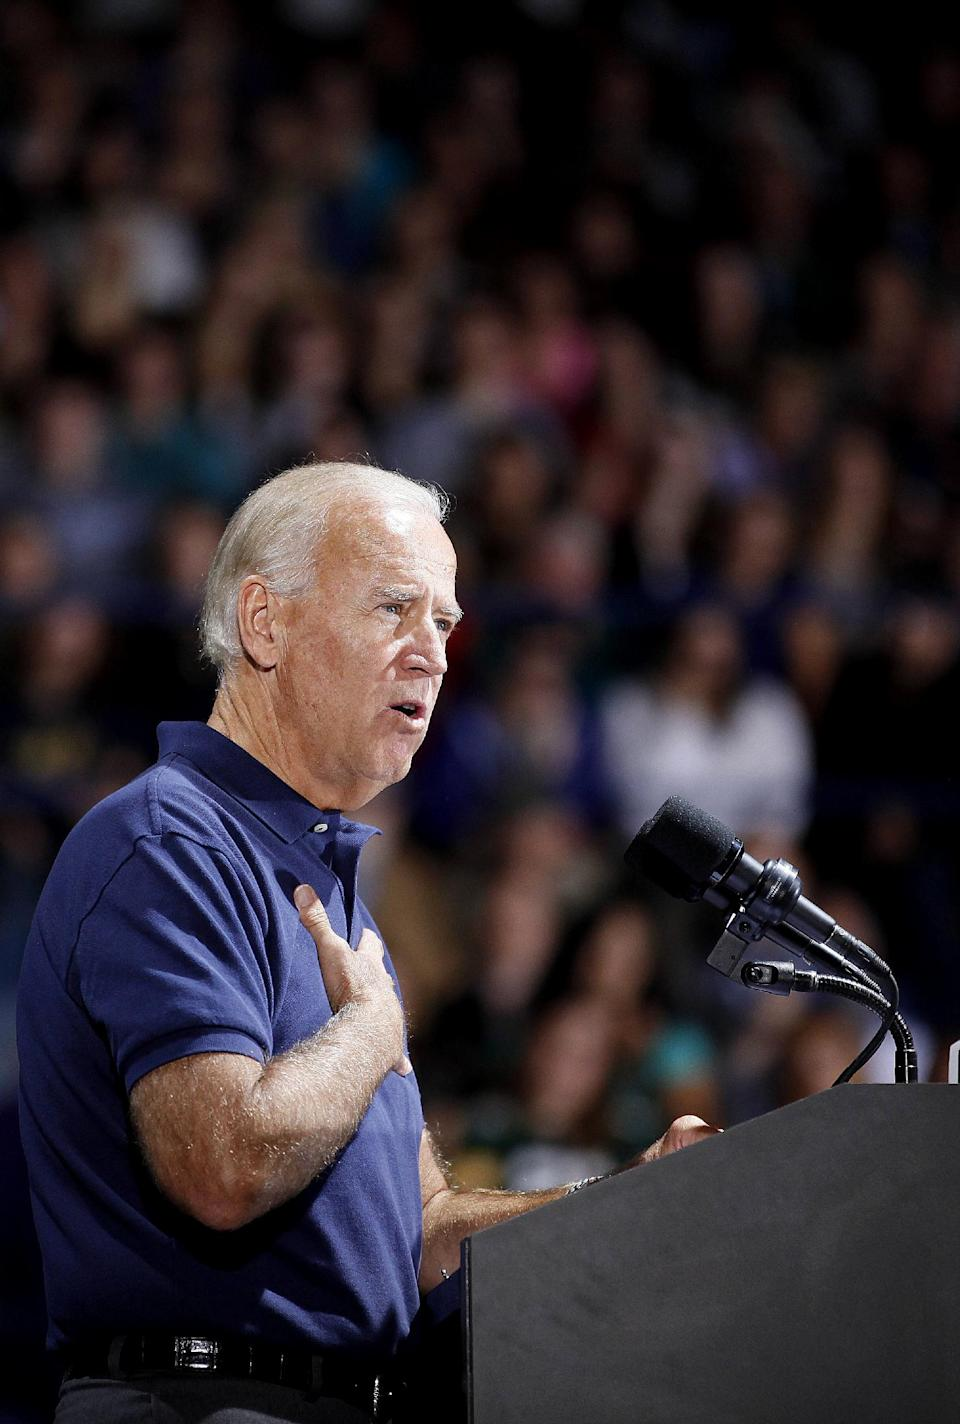 Vice President Joe Biden speaks during a campaign event, Thursday, Sept. 13, 2012, at the Zorn Arena on the University of Wisconsin-Eau Claire campus. (AP Photo/Stacy Bengs)